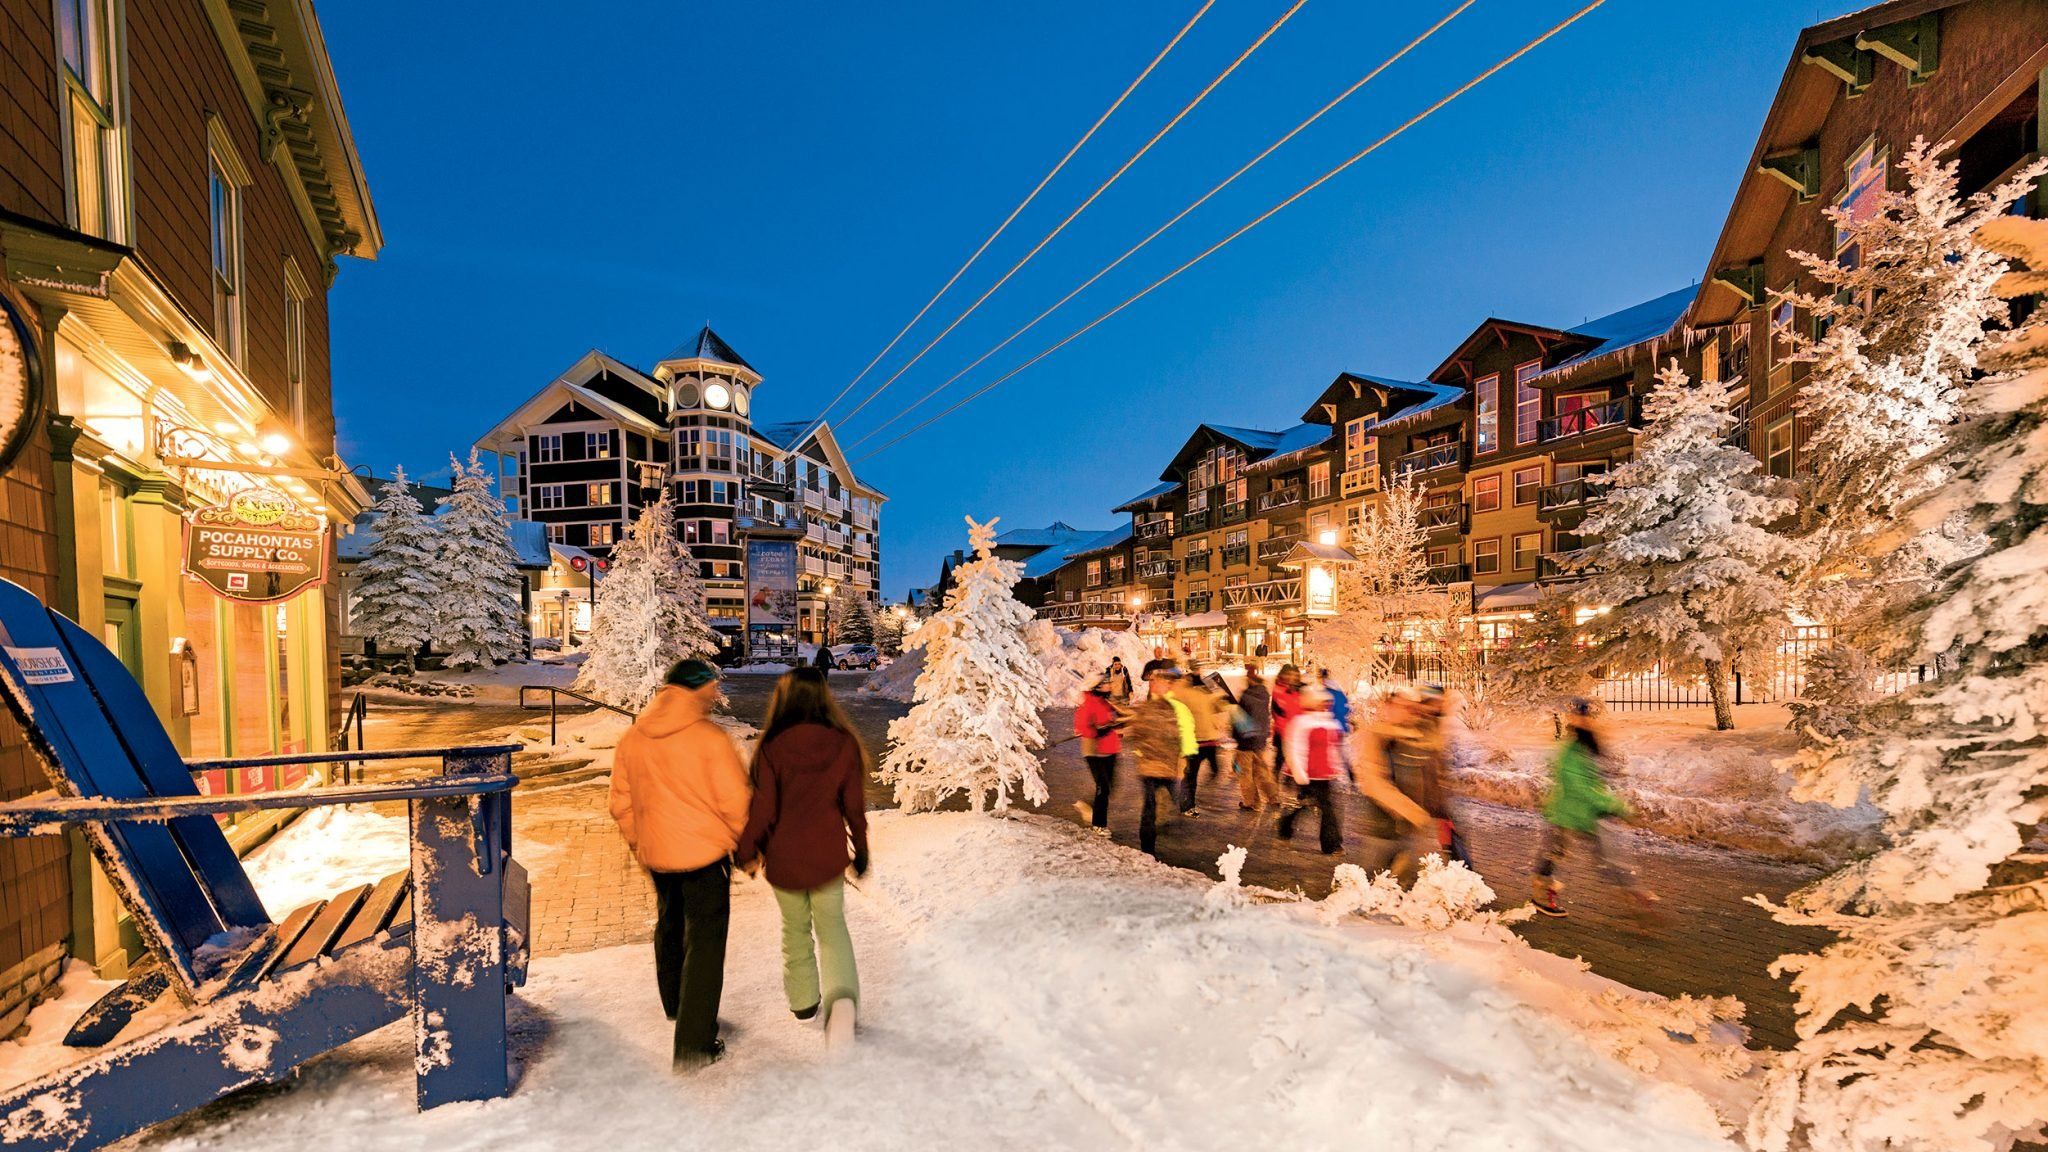 how to spend a weekend at snowshoe | washingtonian (dc)